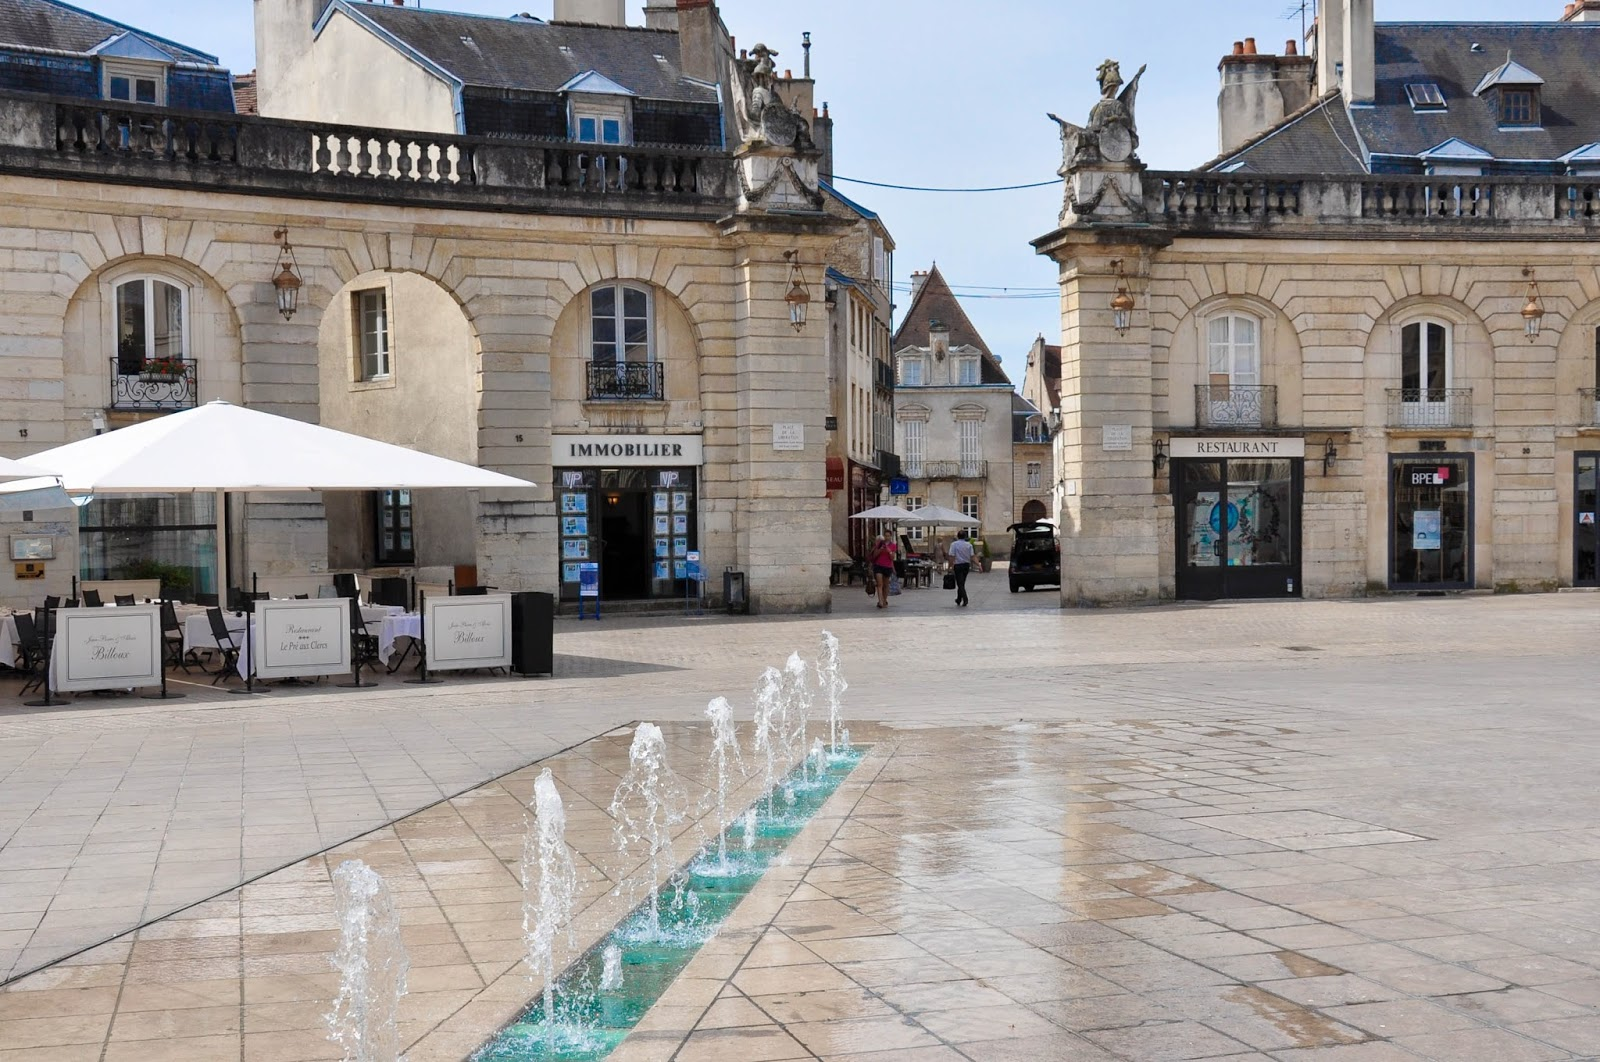 Water fountains, Main Square, Dijon, Burgundy, France